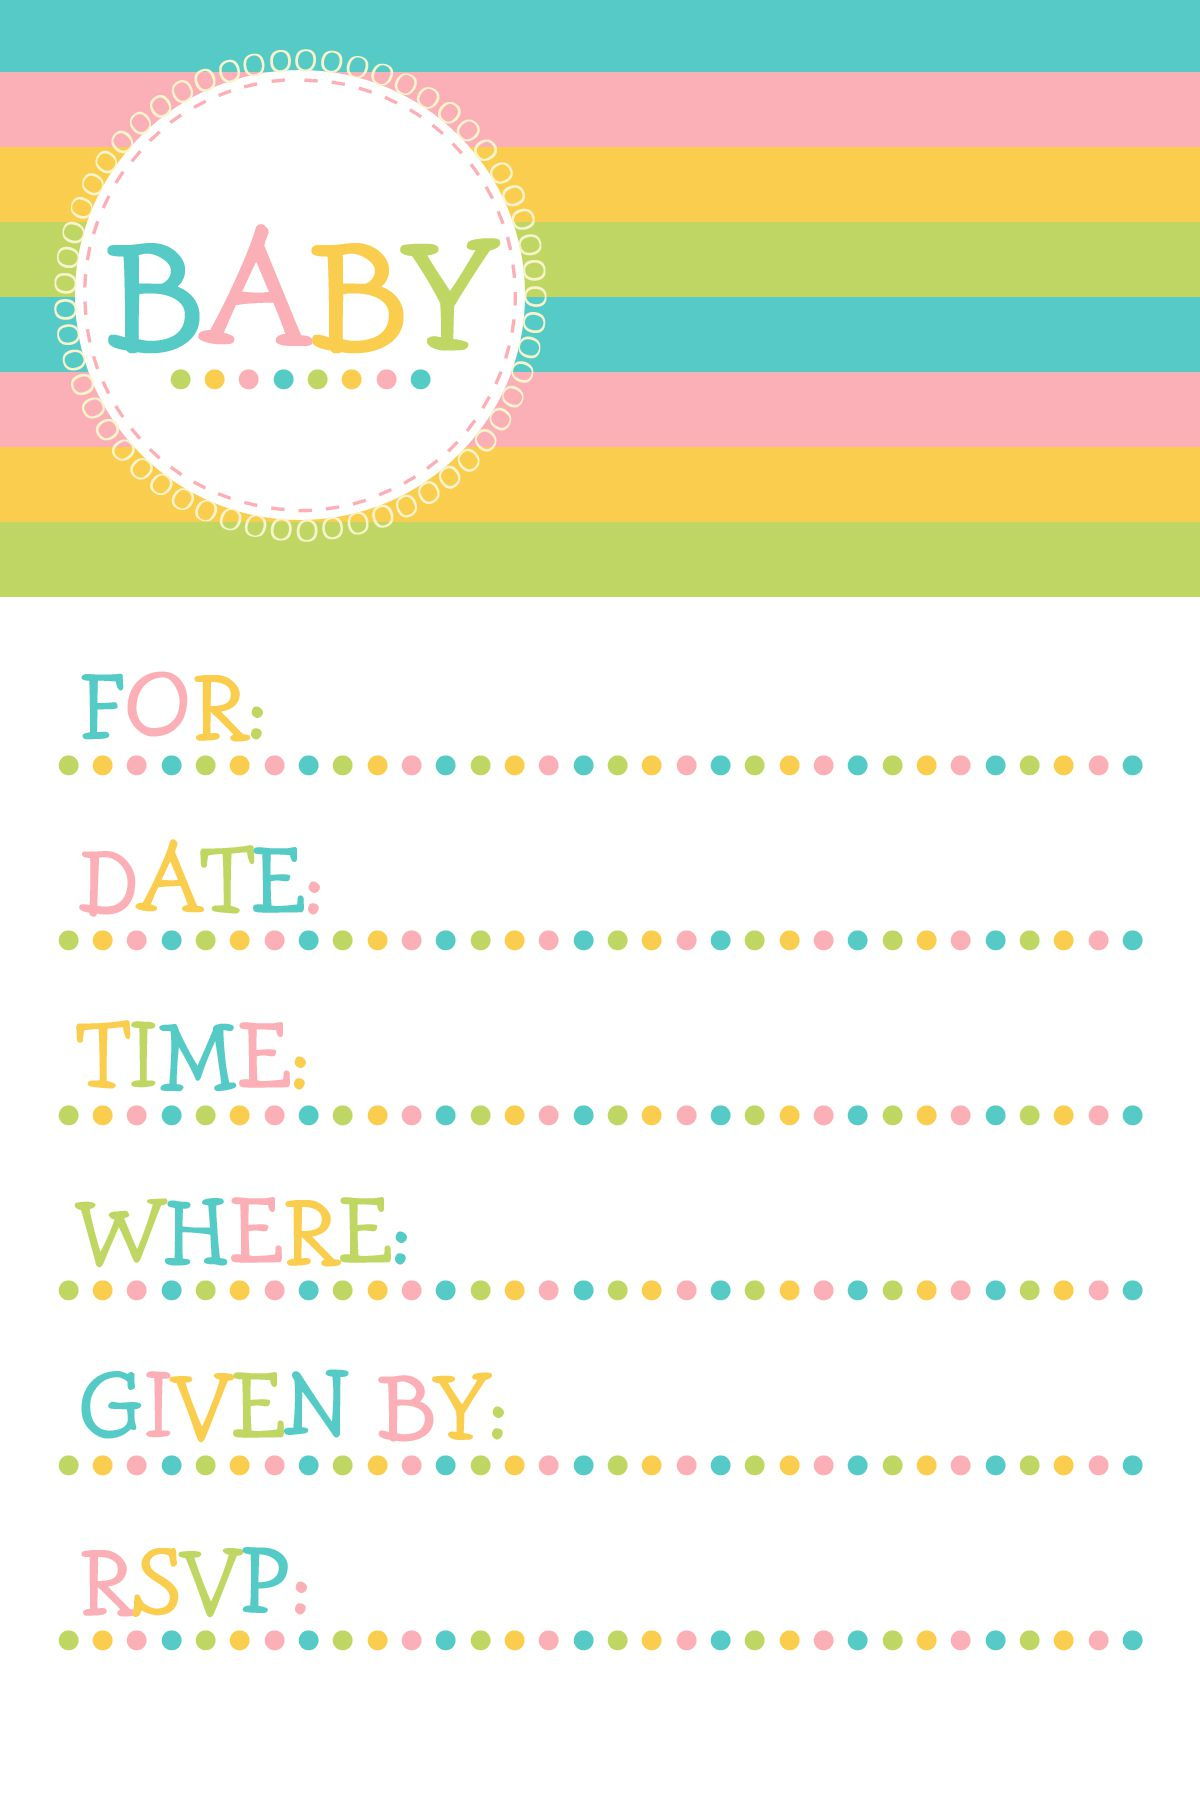 25 Adorable Free Printable Baby Shower Invitations - Free Printable Blank Baby Shower Invitations